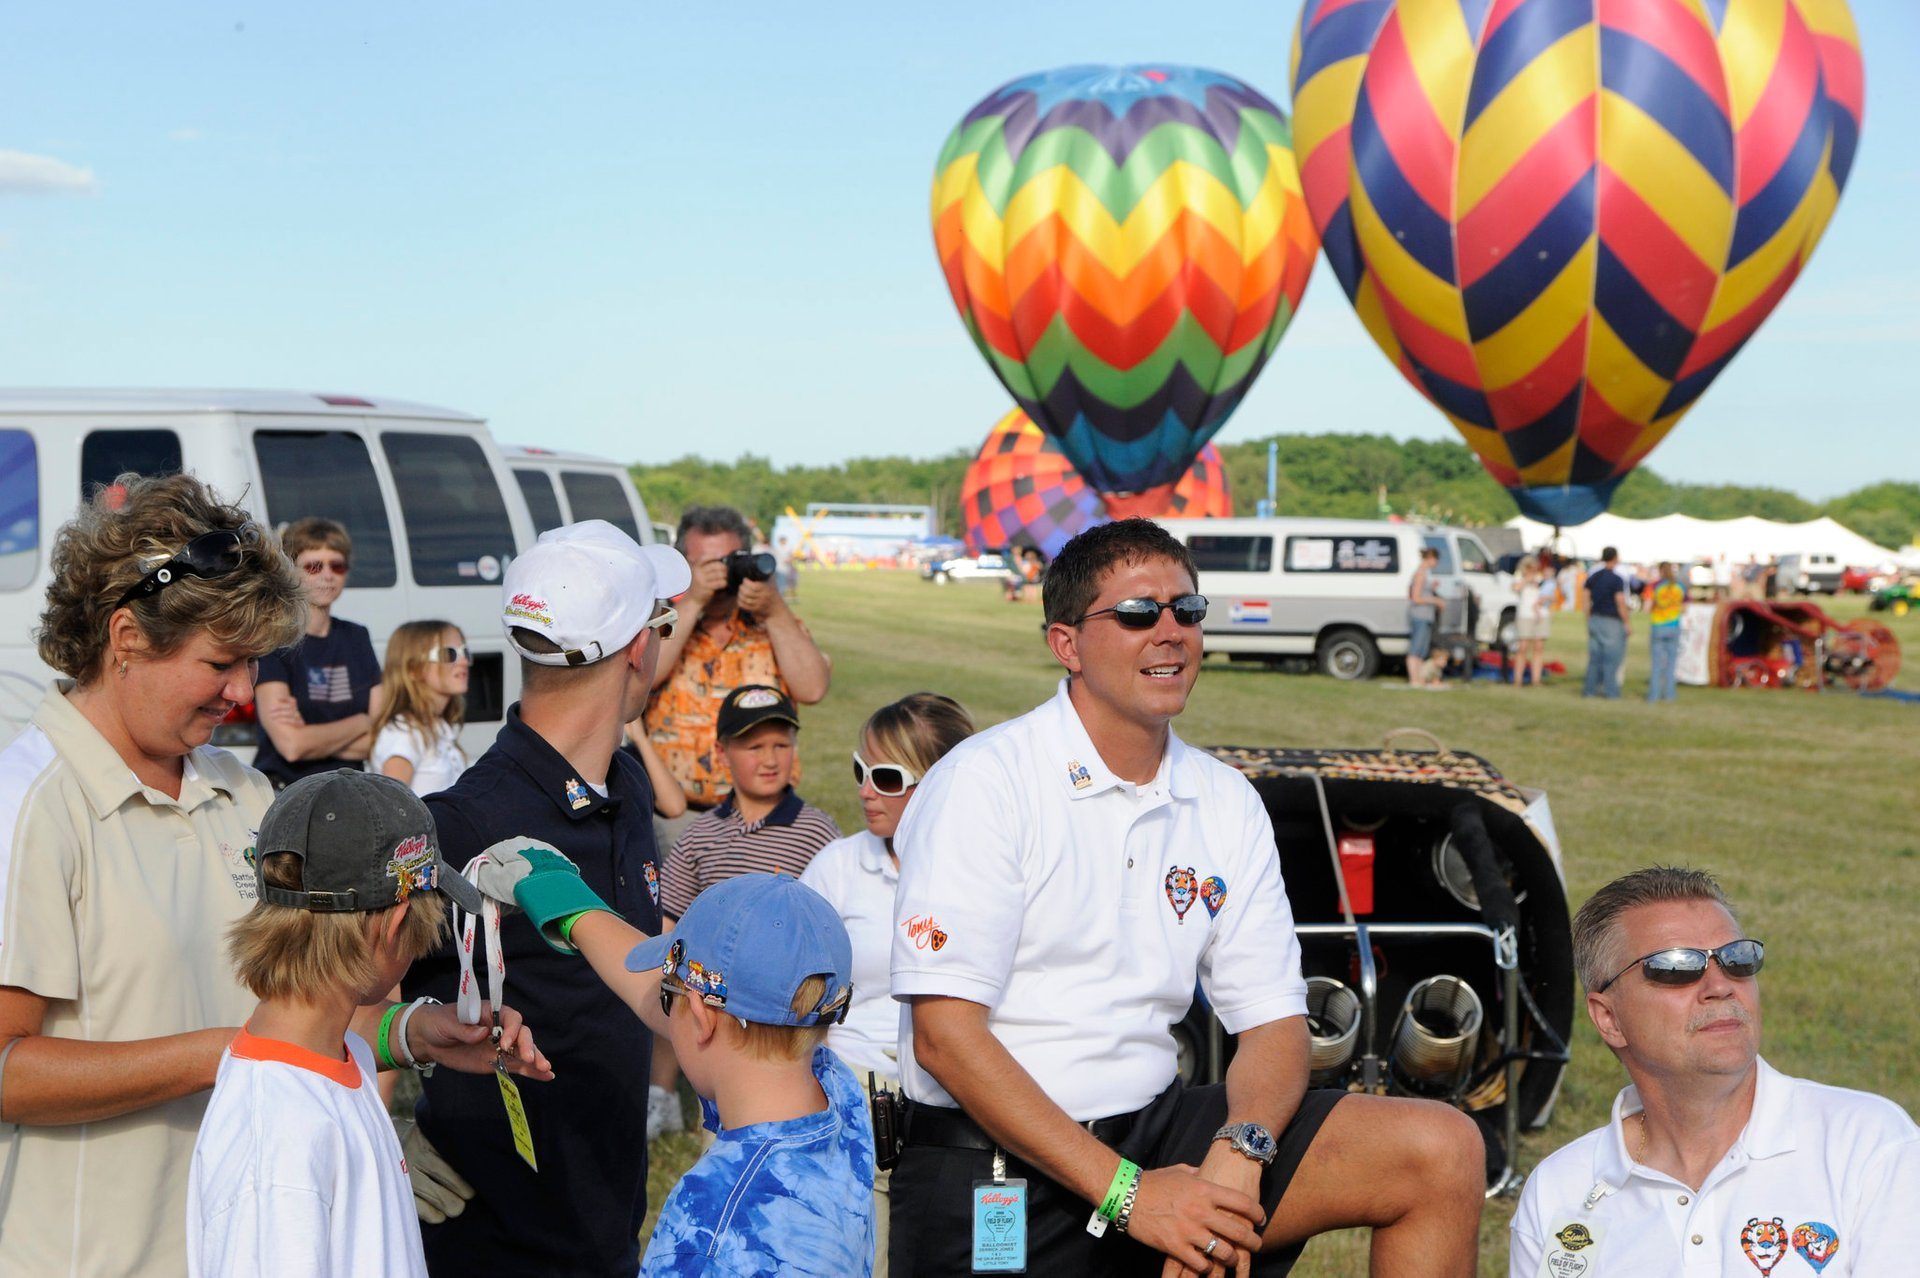 Battle Creek Field of Flight Air Show & Balloon Festival in Midwest - Best Season 2020